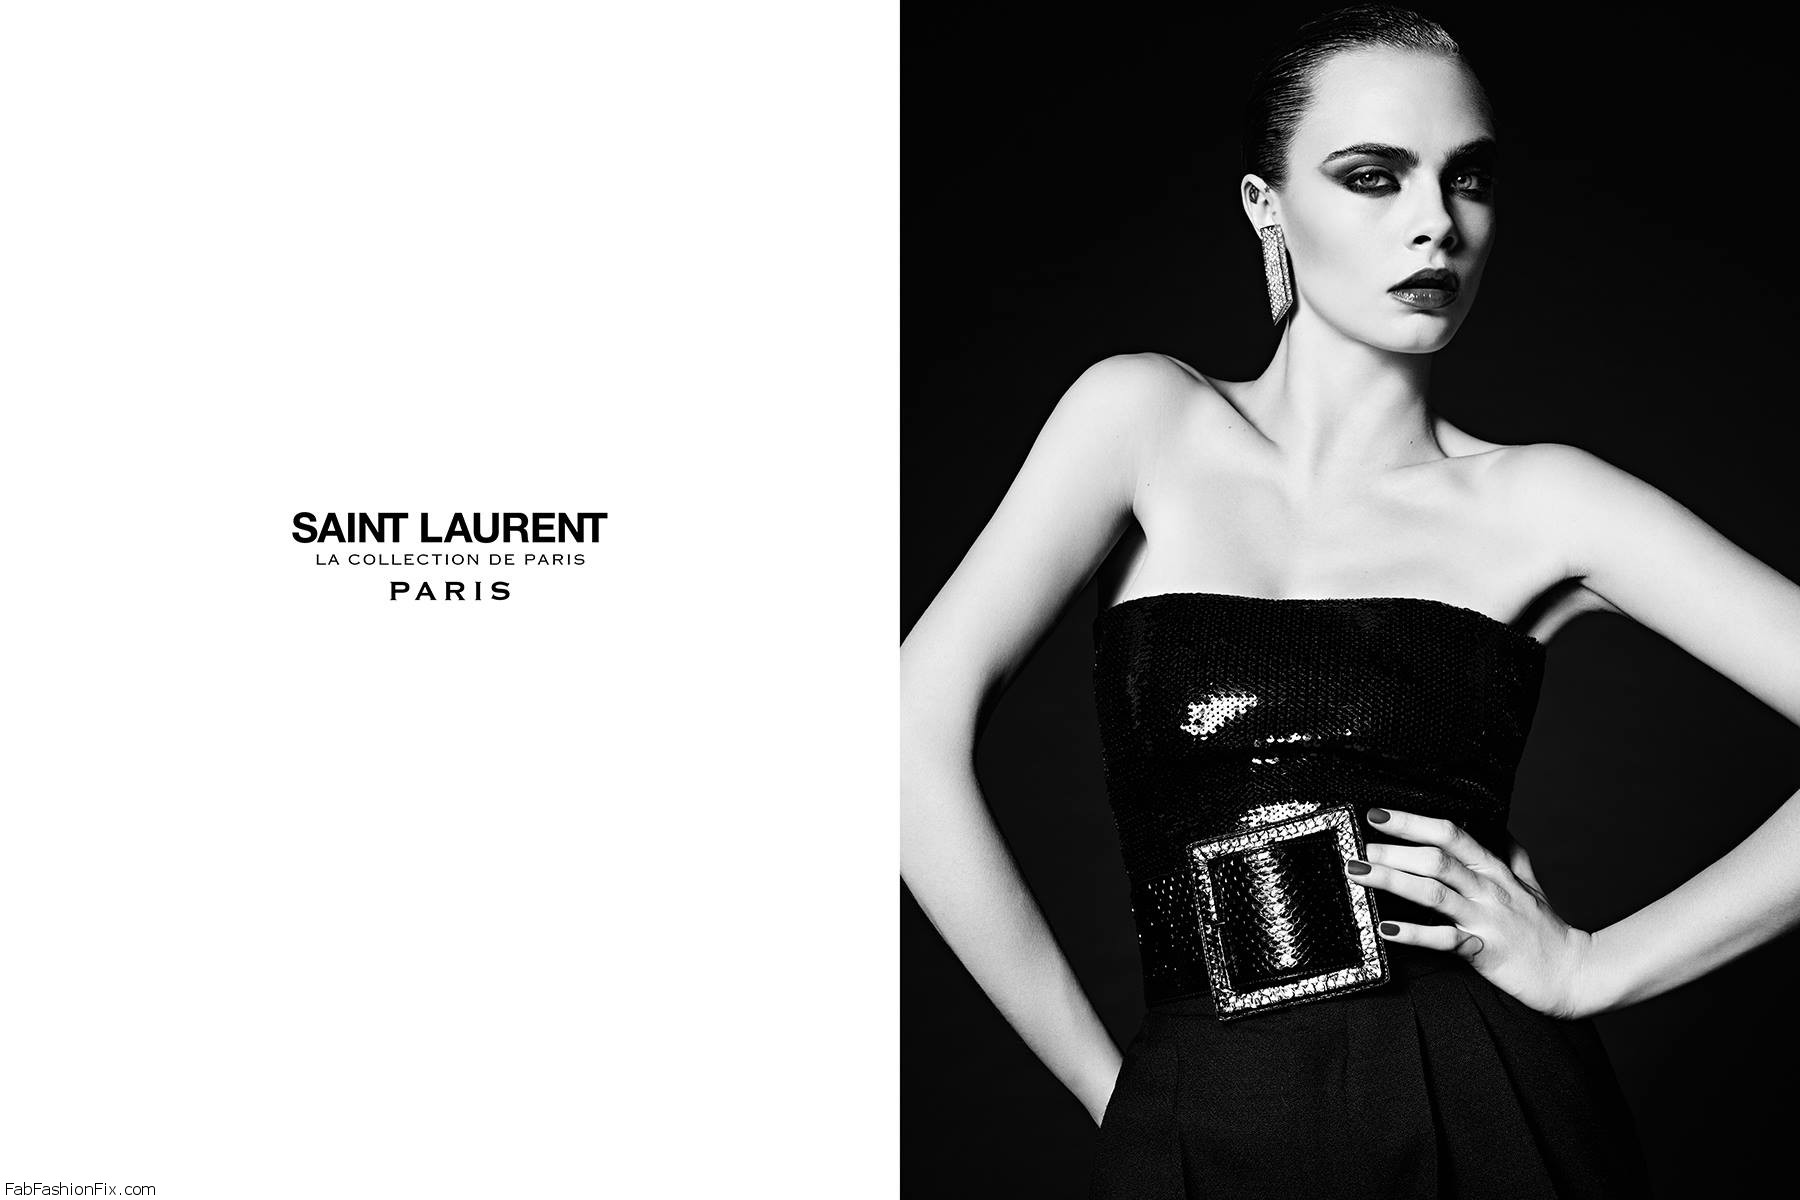 Cara Delevingne Is The Face Of Saint Laurent's La Collection De Paris Campaign